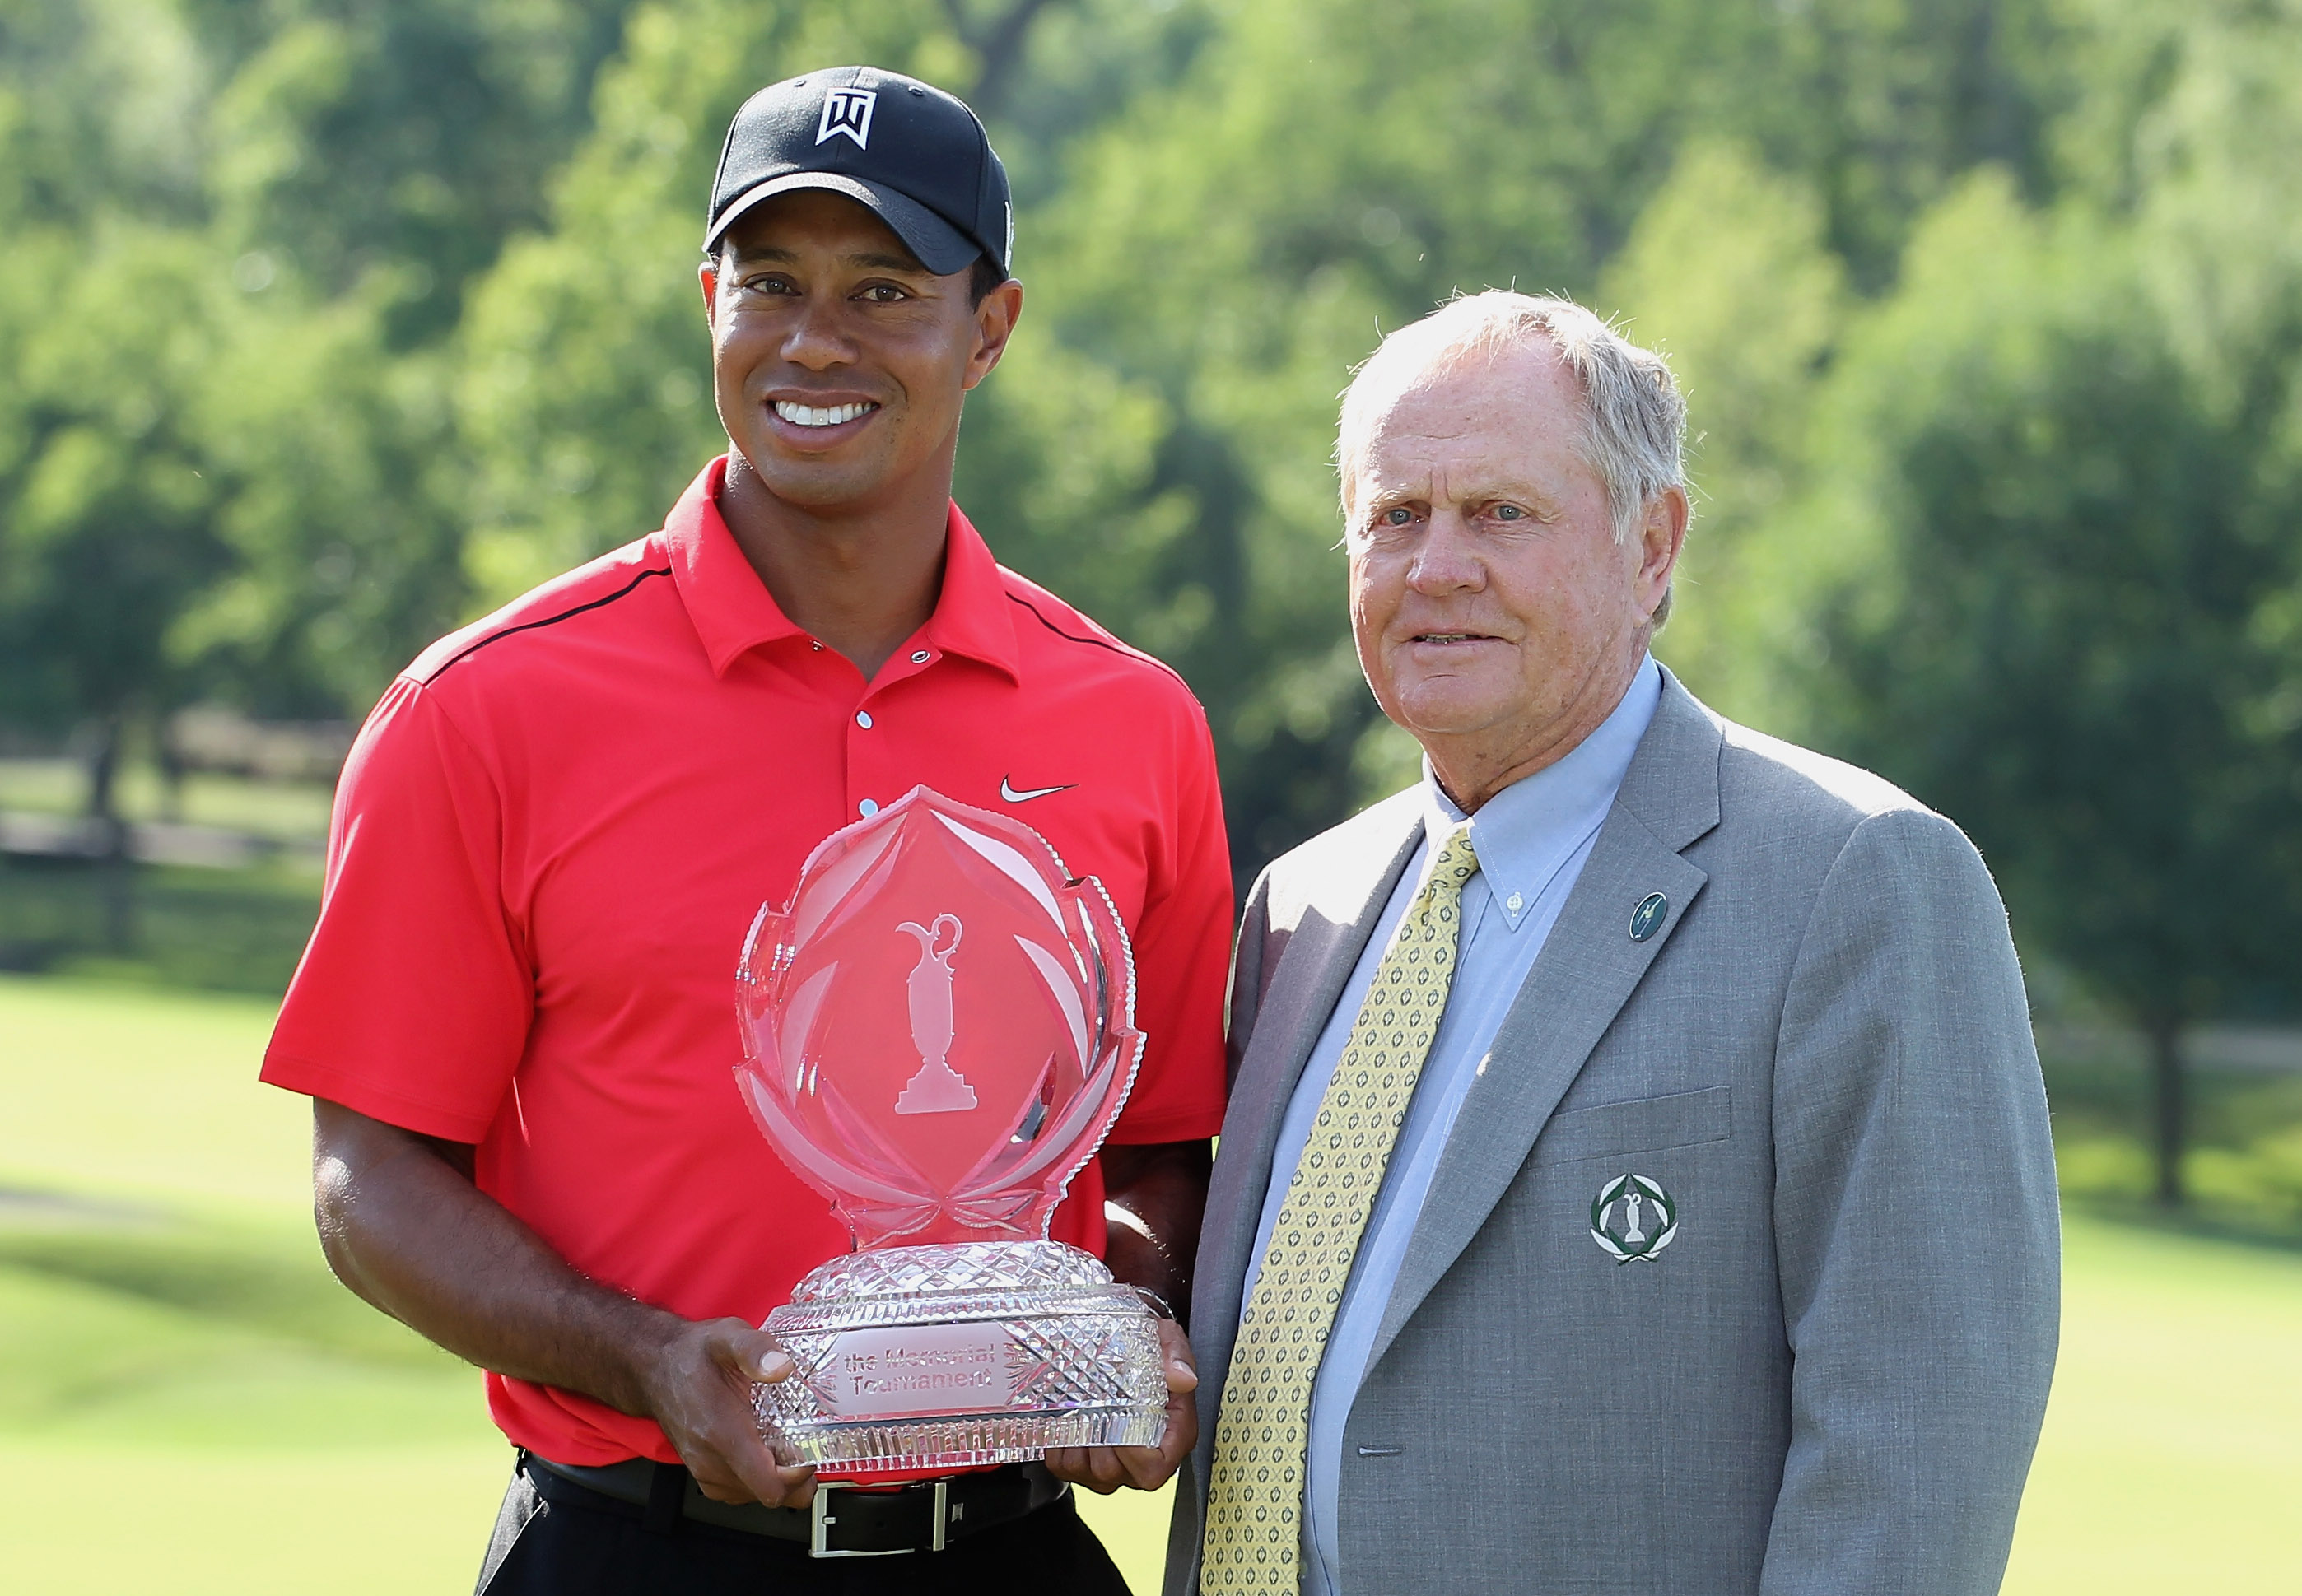 Why Is Jack Nicklaus' Tournament Called the Memorial?